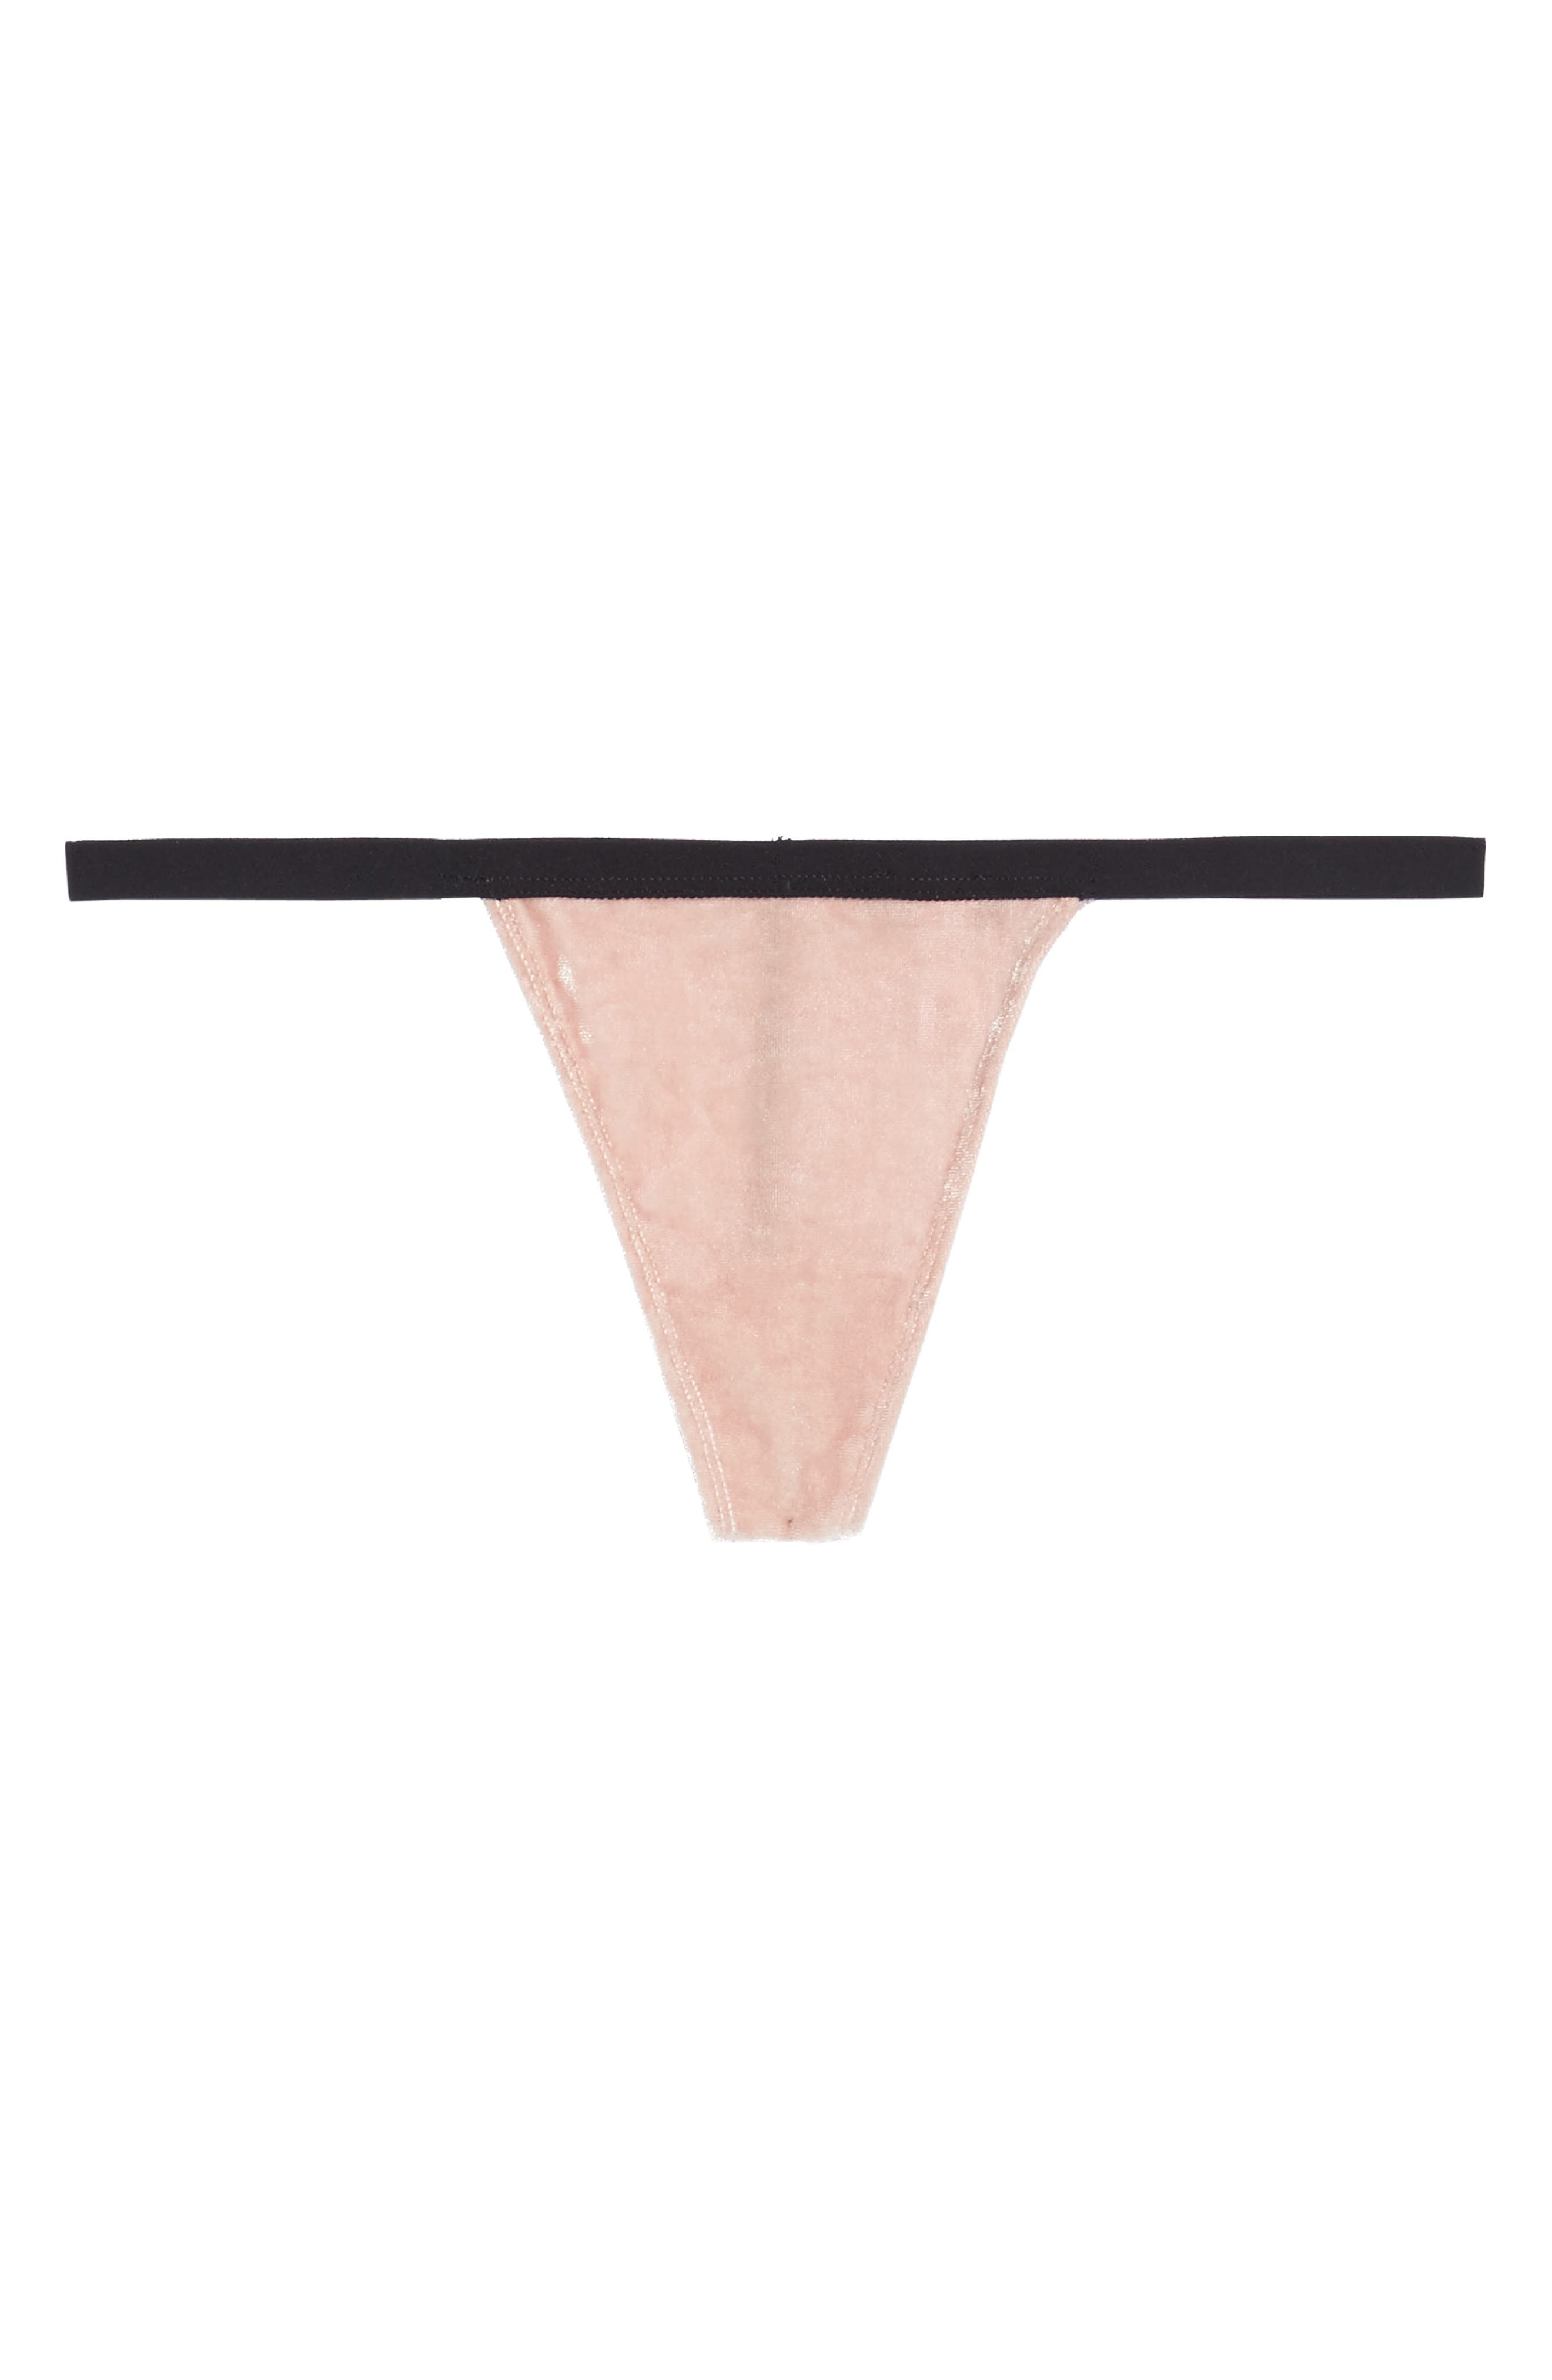 Bisou Tex G-String Thong,                             Alternate thumbnail 5, color,                             650